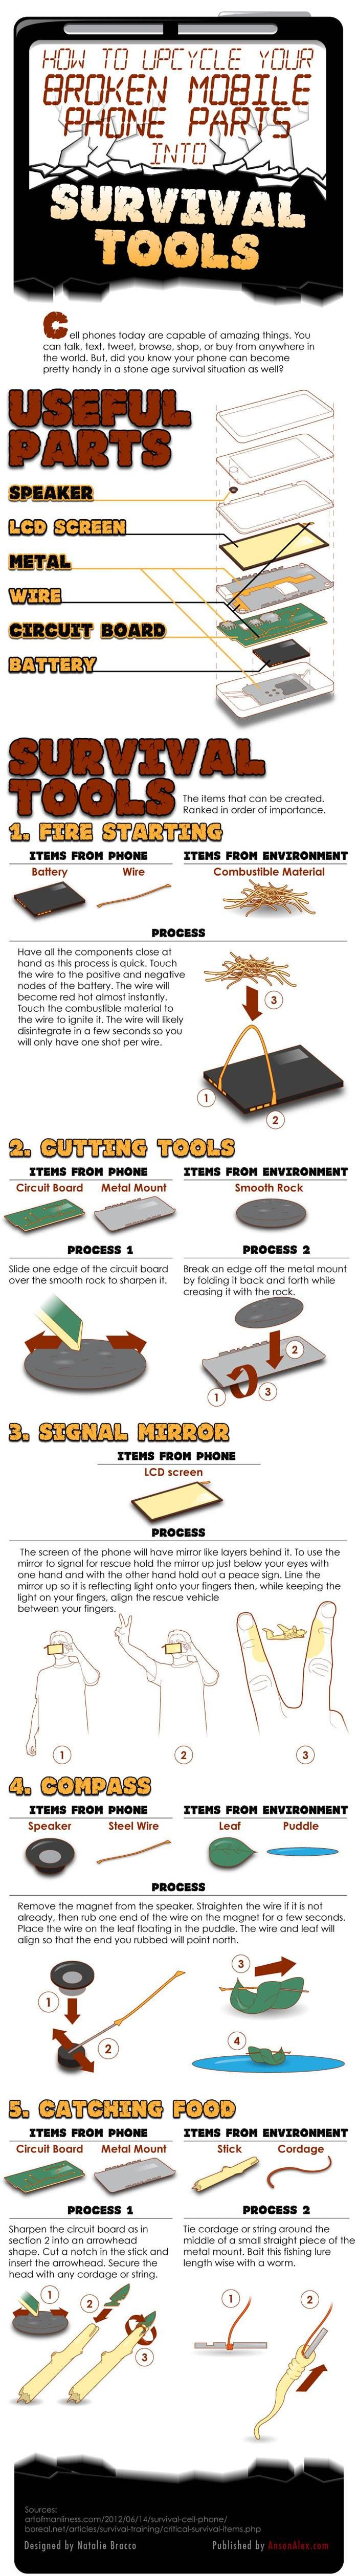 A fascinating infographic on how to turn a cell phone into a survival tool.